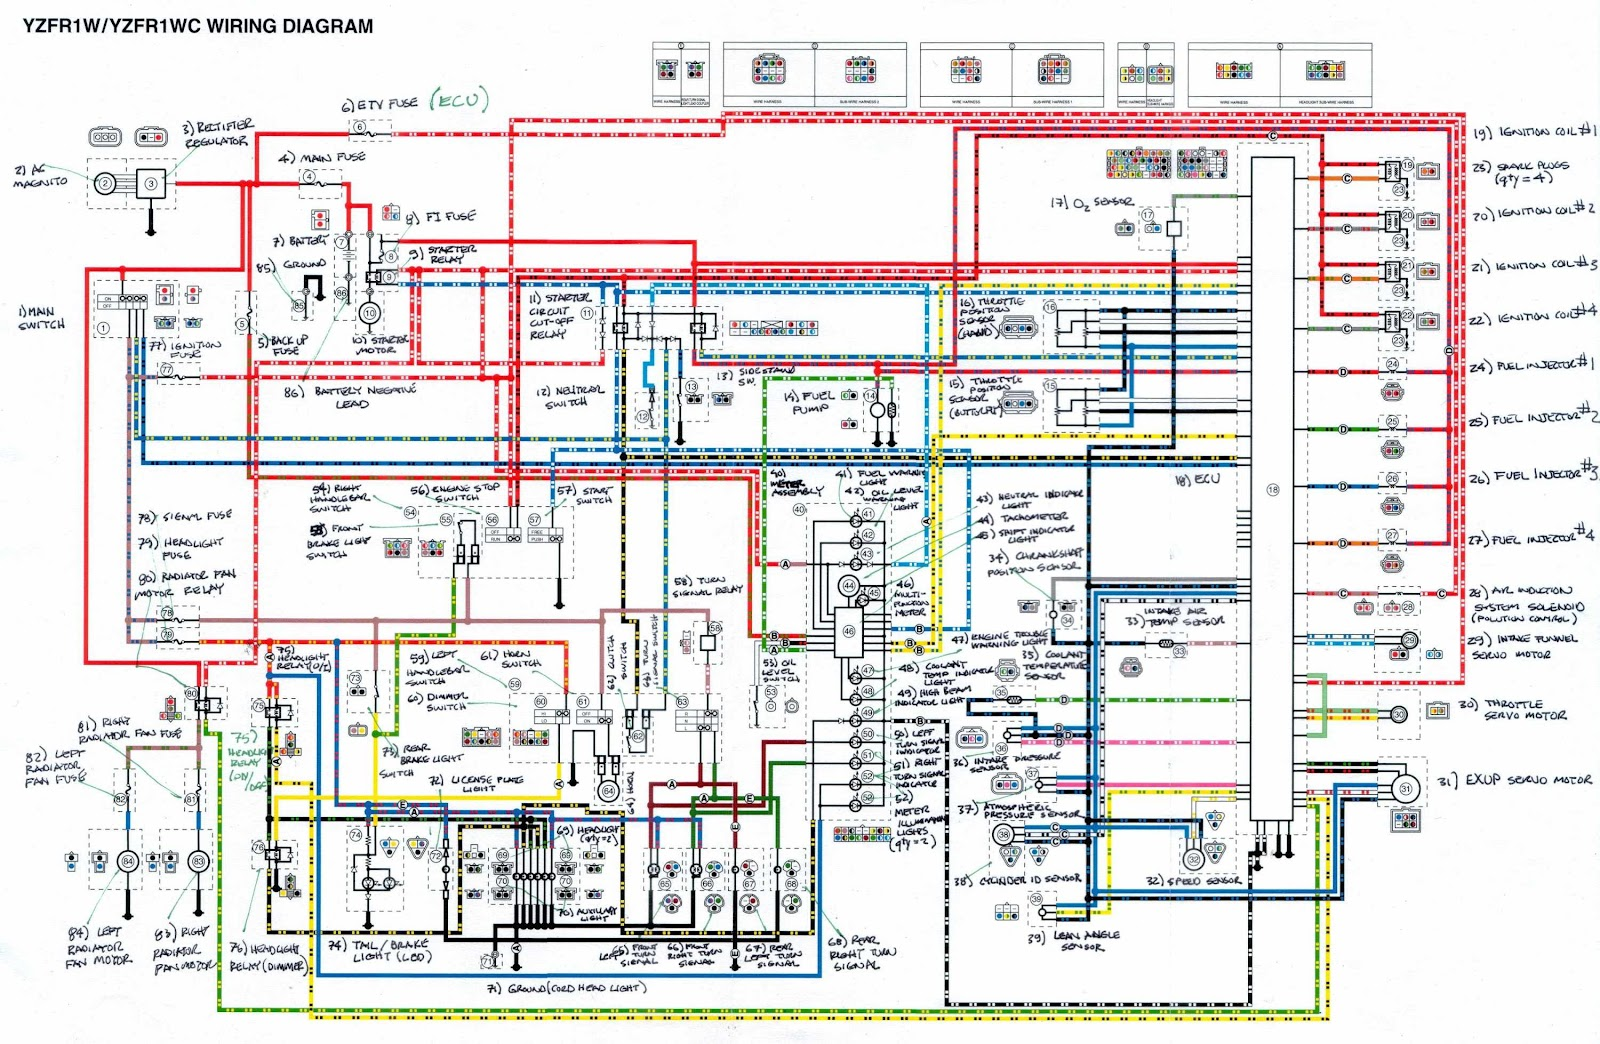 Yamaha+YZF R1+Motorcycle+Wiring+Diagram 2008 yamaha v wiring diagram 100 images venturers org tech r6 wiring diagram at gsmx.co